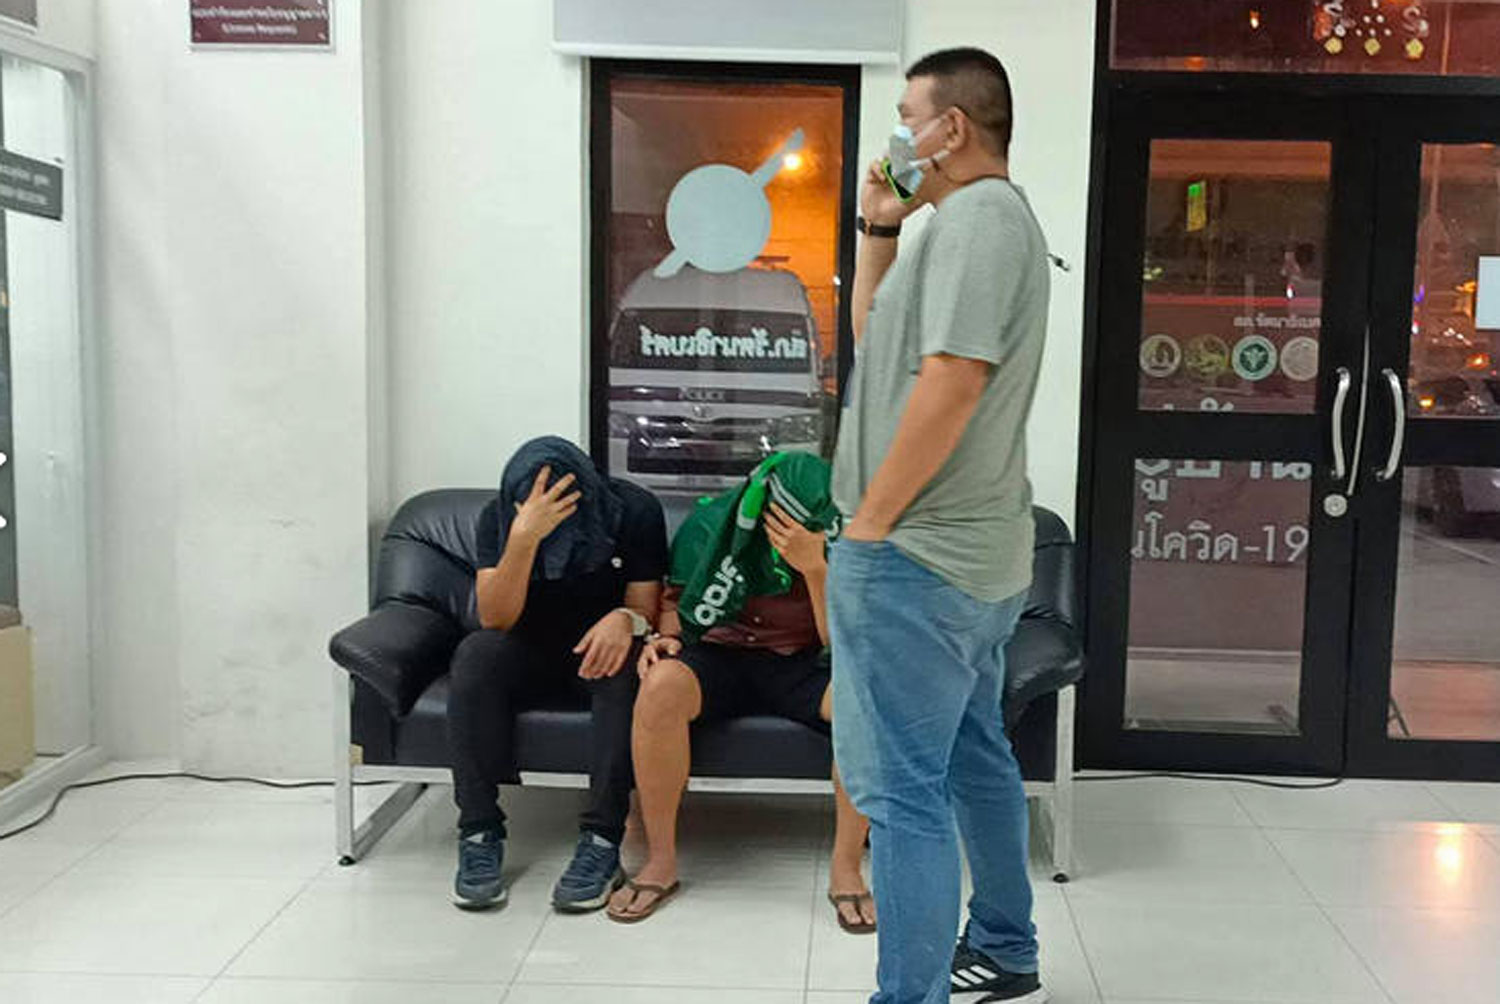 The two suspects, Cpl Vorasart Lailang, 31, of Khon Kaen and Nawatkorn Pongassaphon, 31, of Nakhon Ratchasima (both seated), cover their faces at Rattanathibet police station after their arrest on Wednesday night for extortion. (Photo: FM91bkk.com)